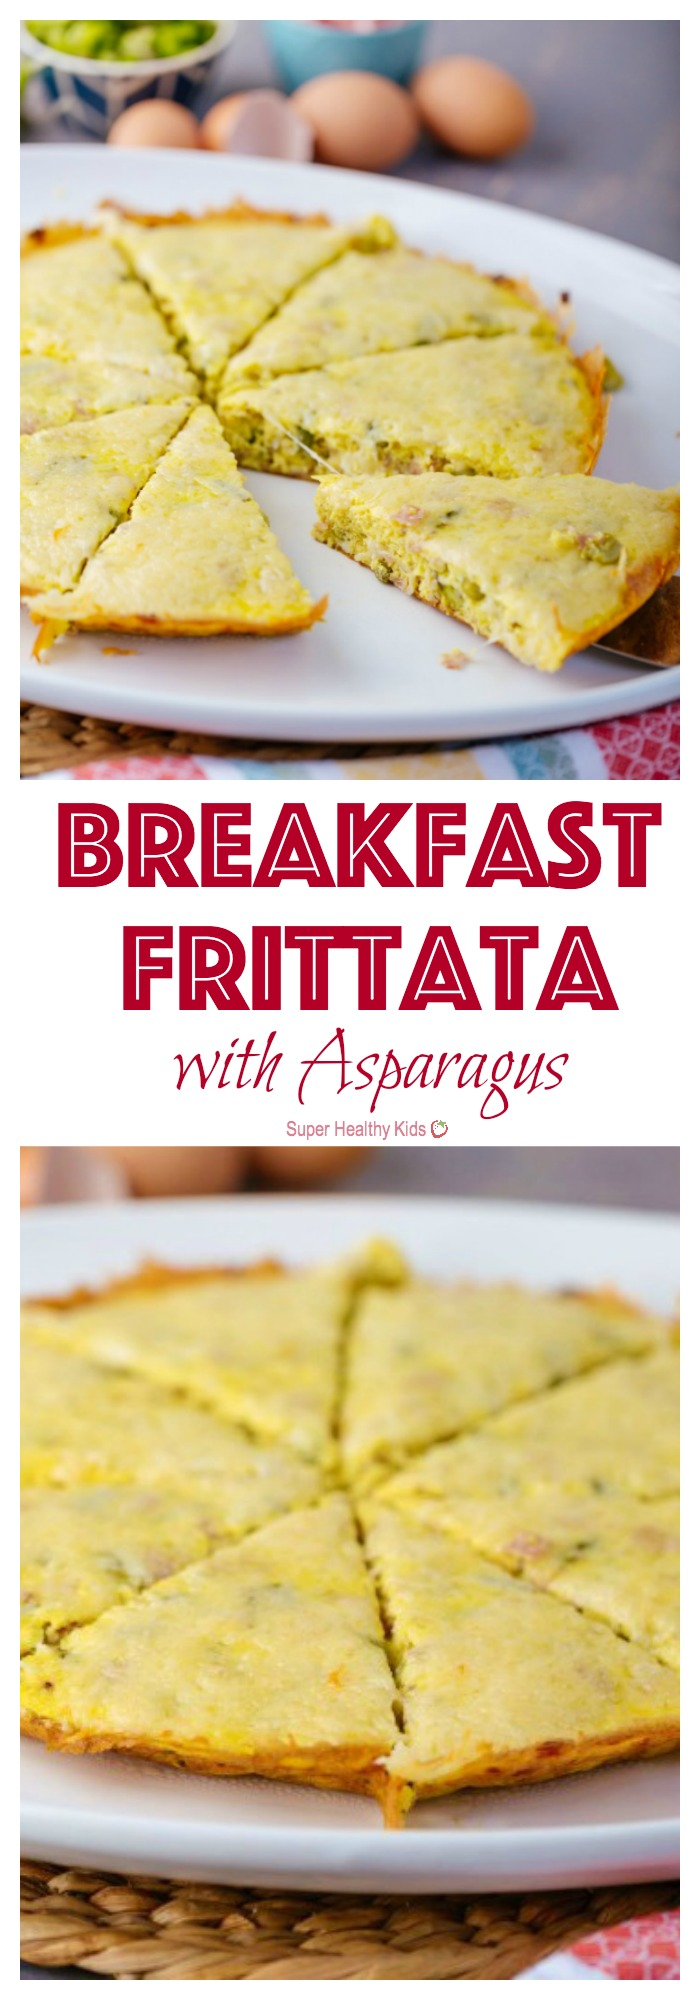 Breakfast Frittata with Asparagus. The perfect breakfast for a lazy Sunday morning! http://www.superhealthykids.com/breakfast-frittata-with-asparagus/